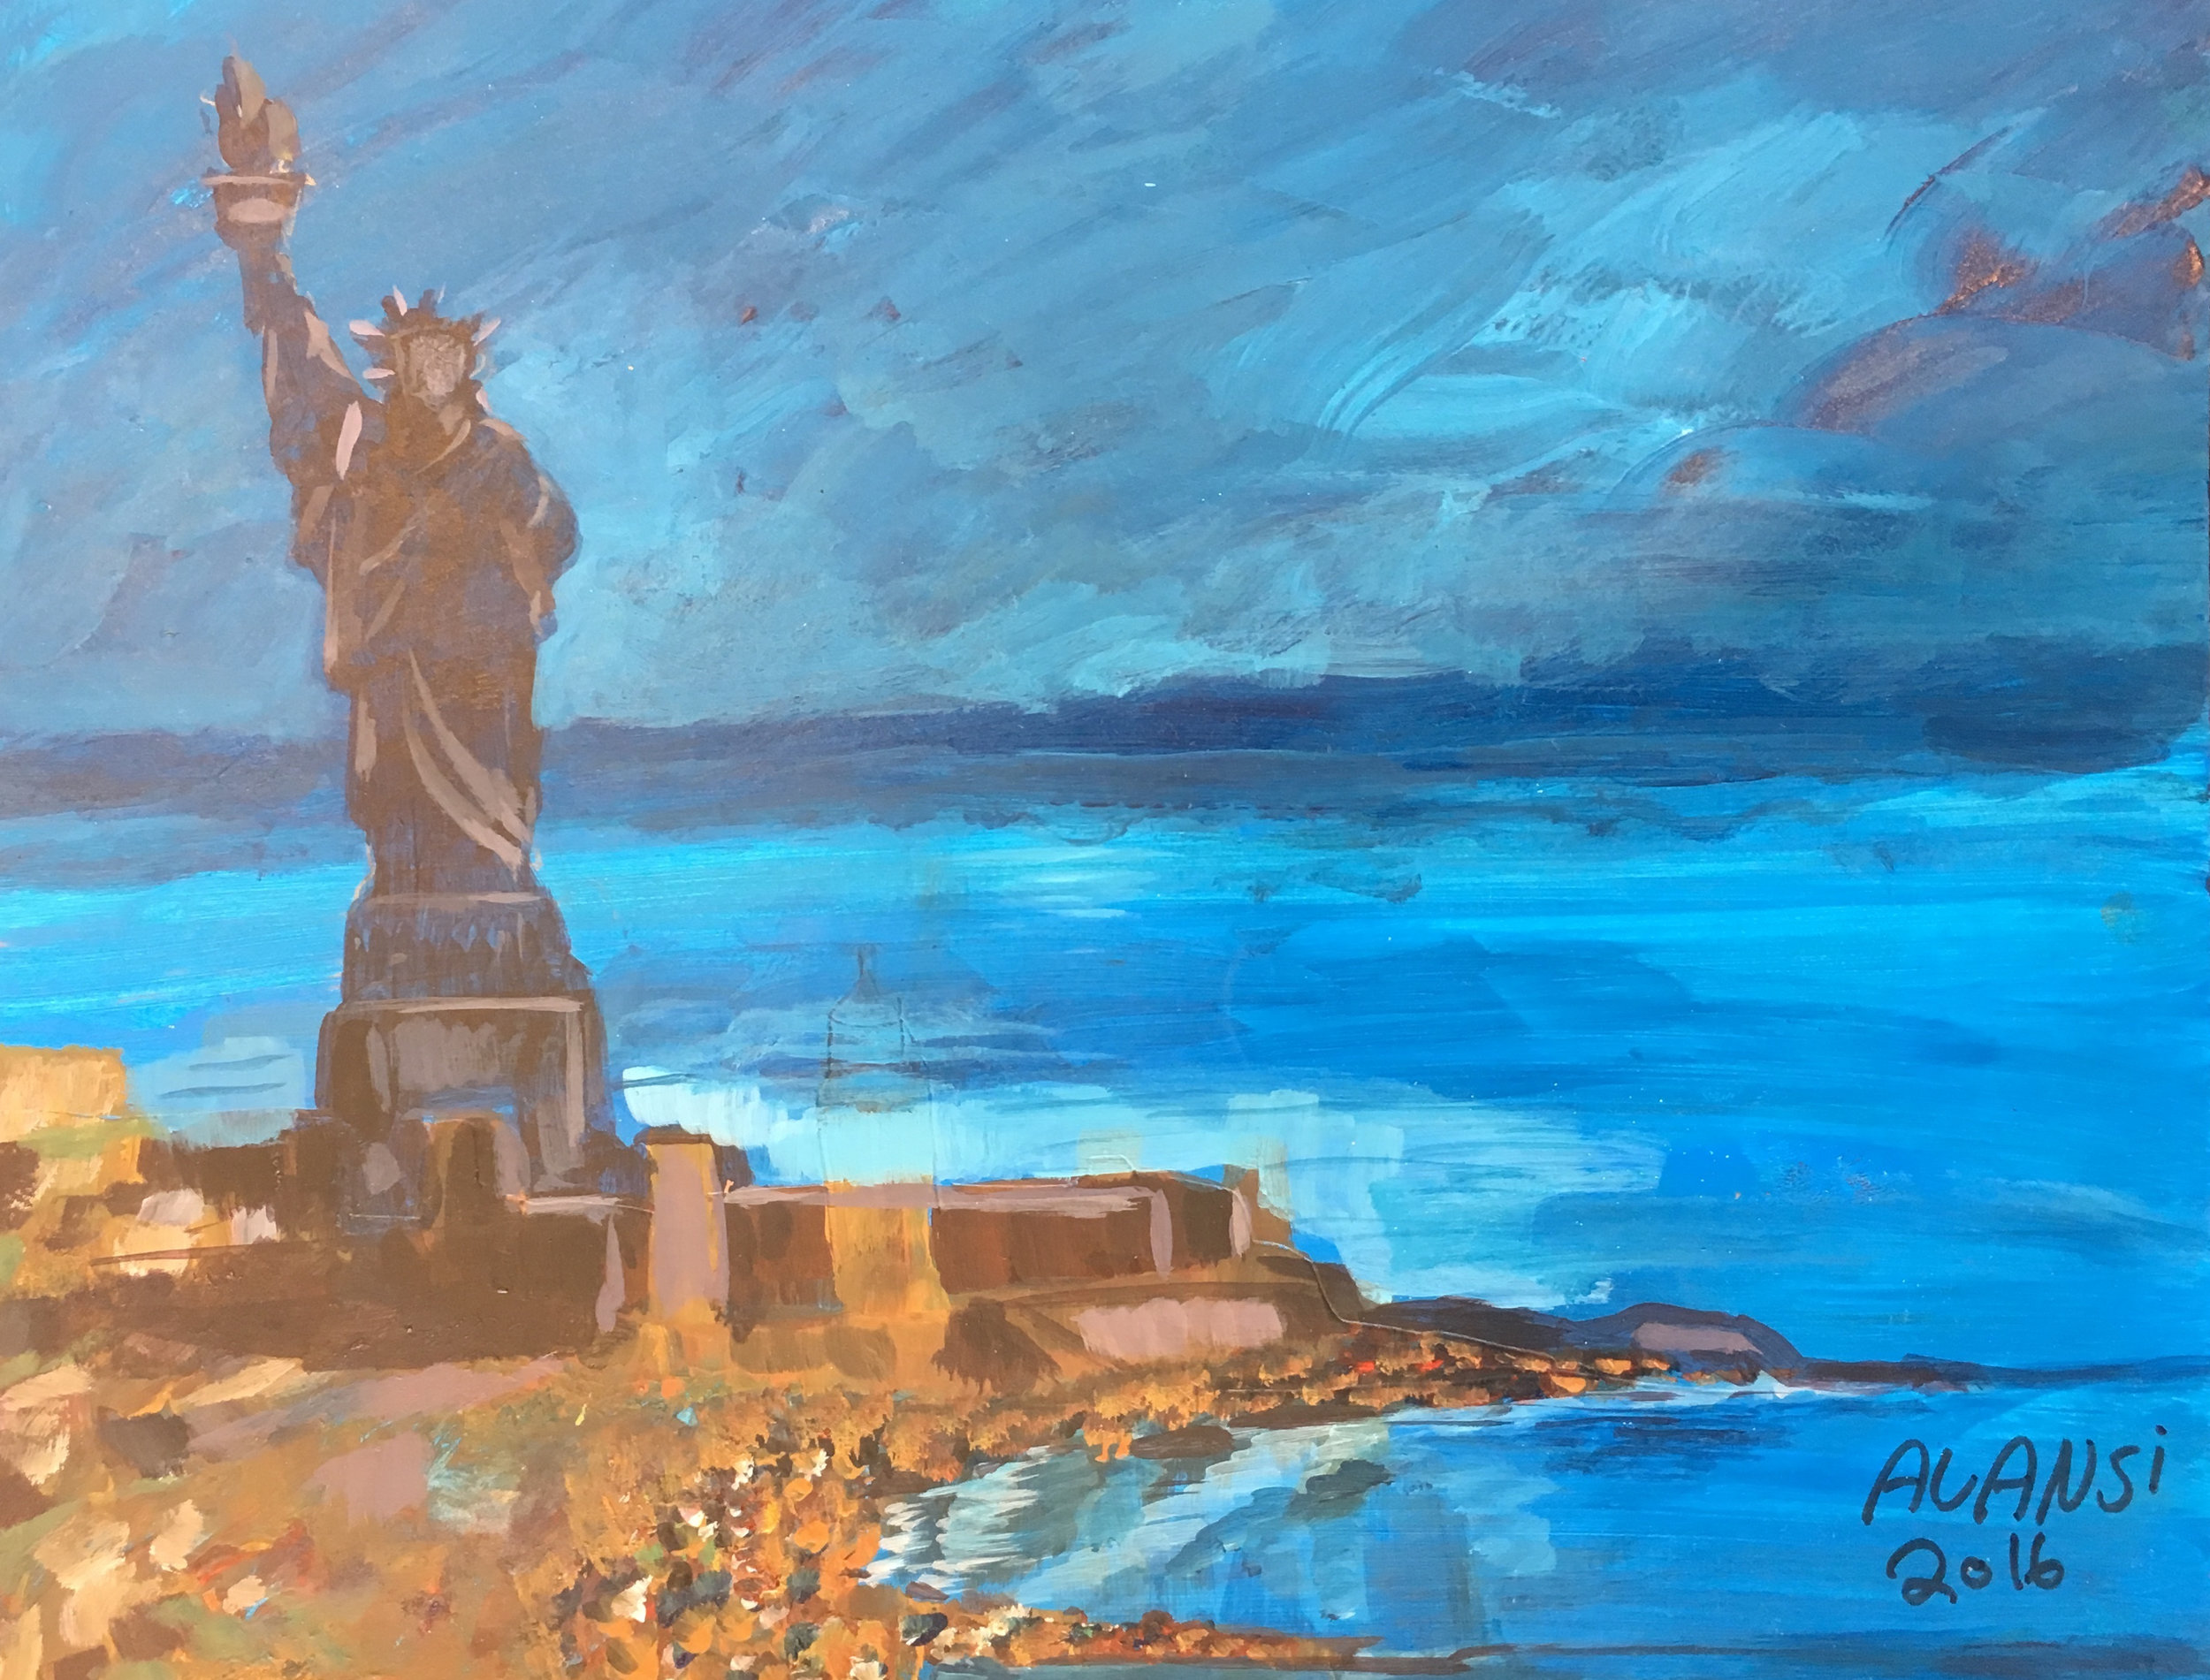 Muhammad Ansi, Statue of Liberty, 2016.